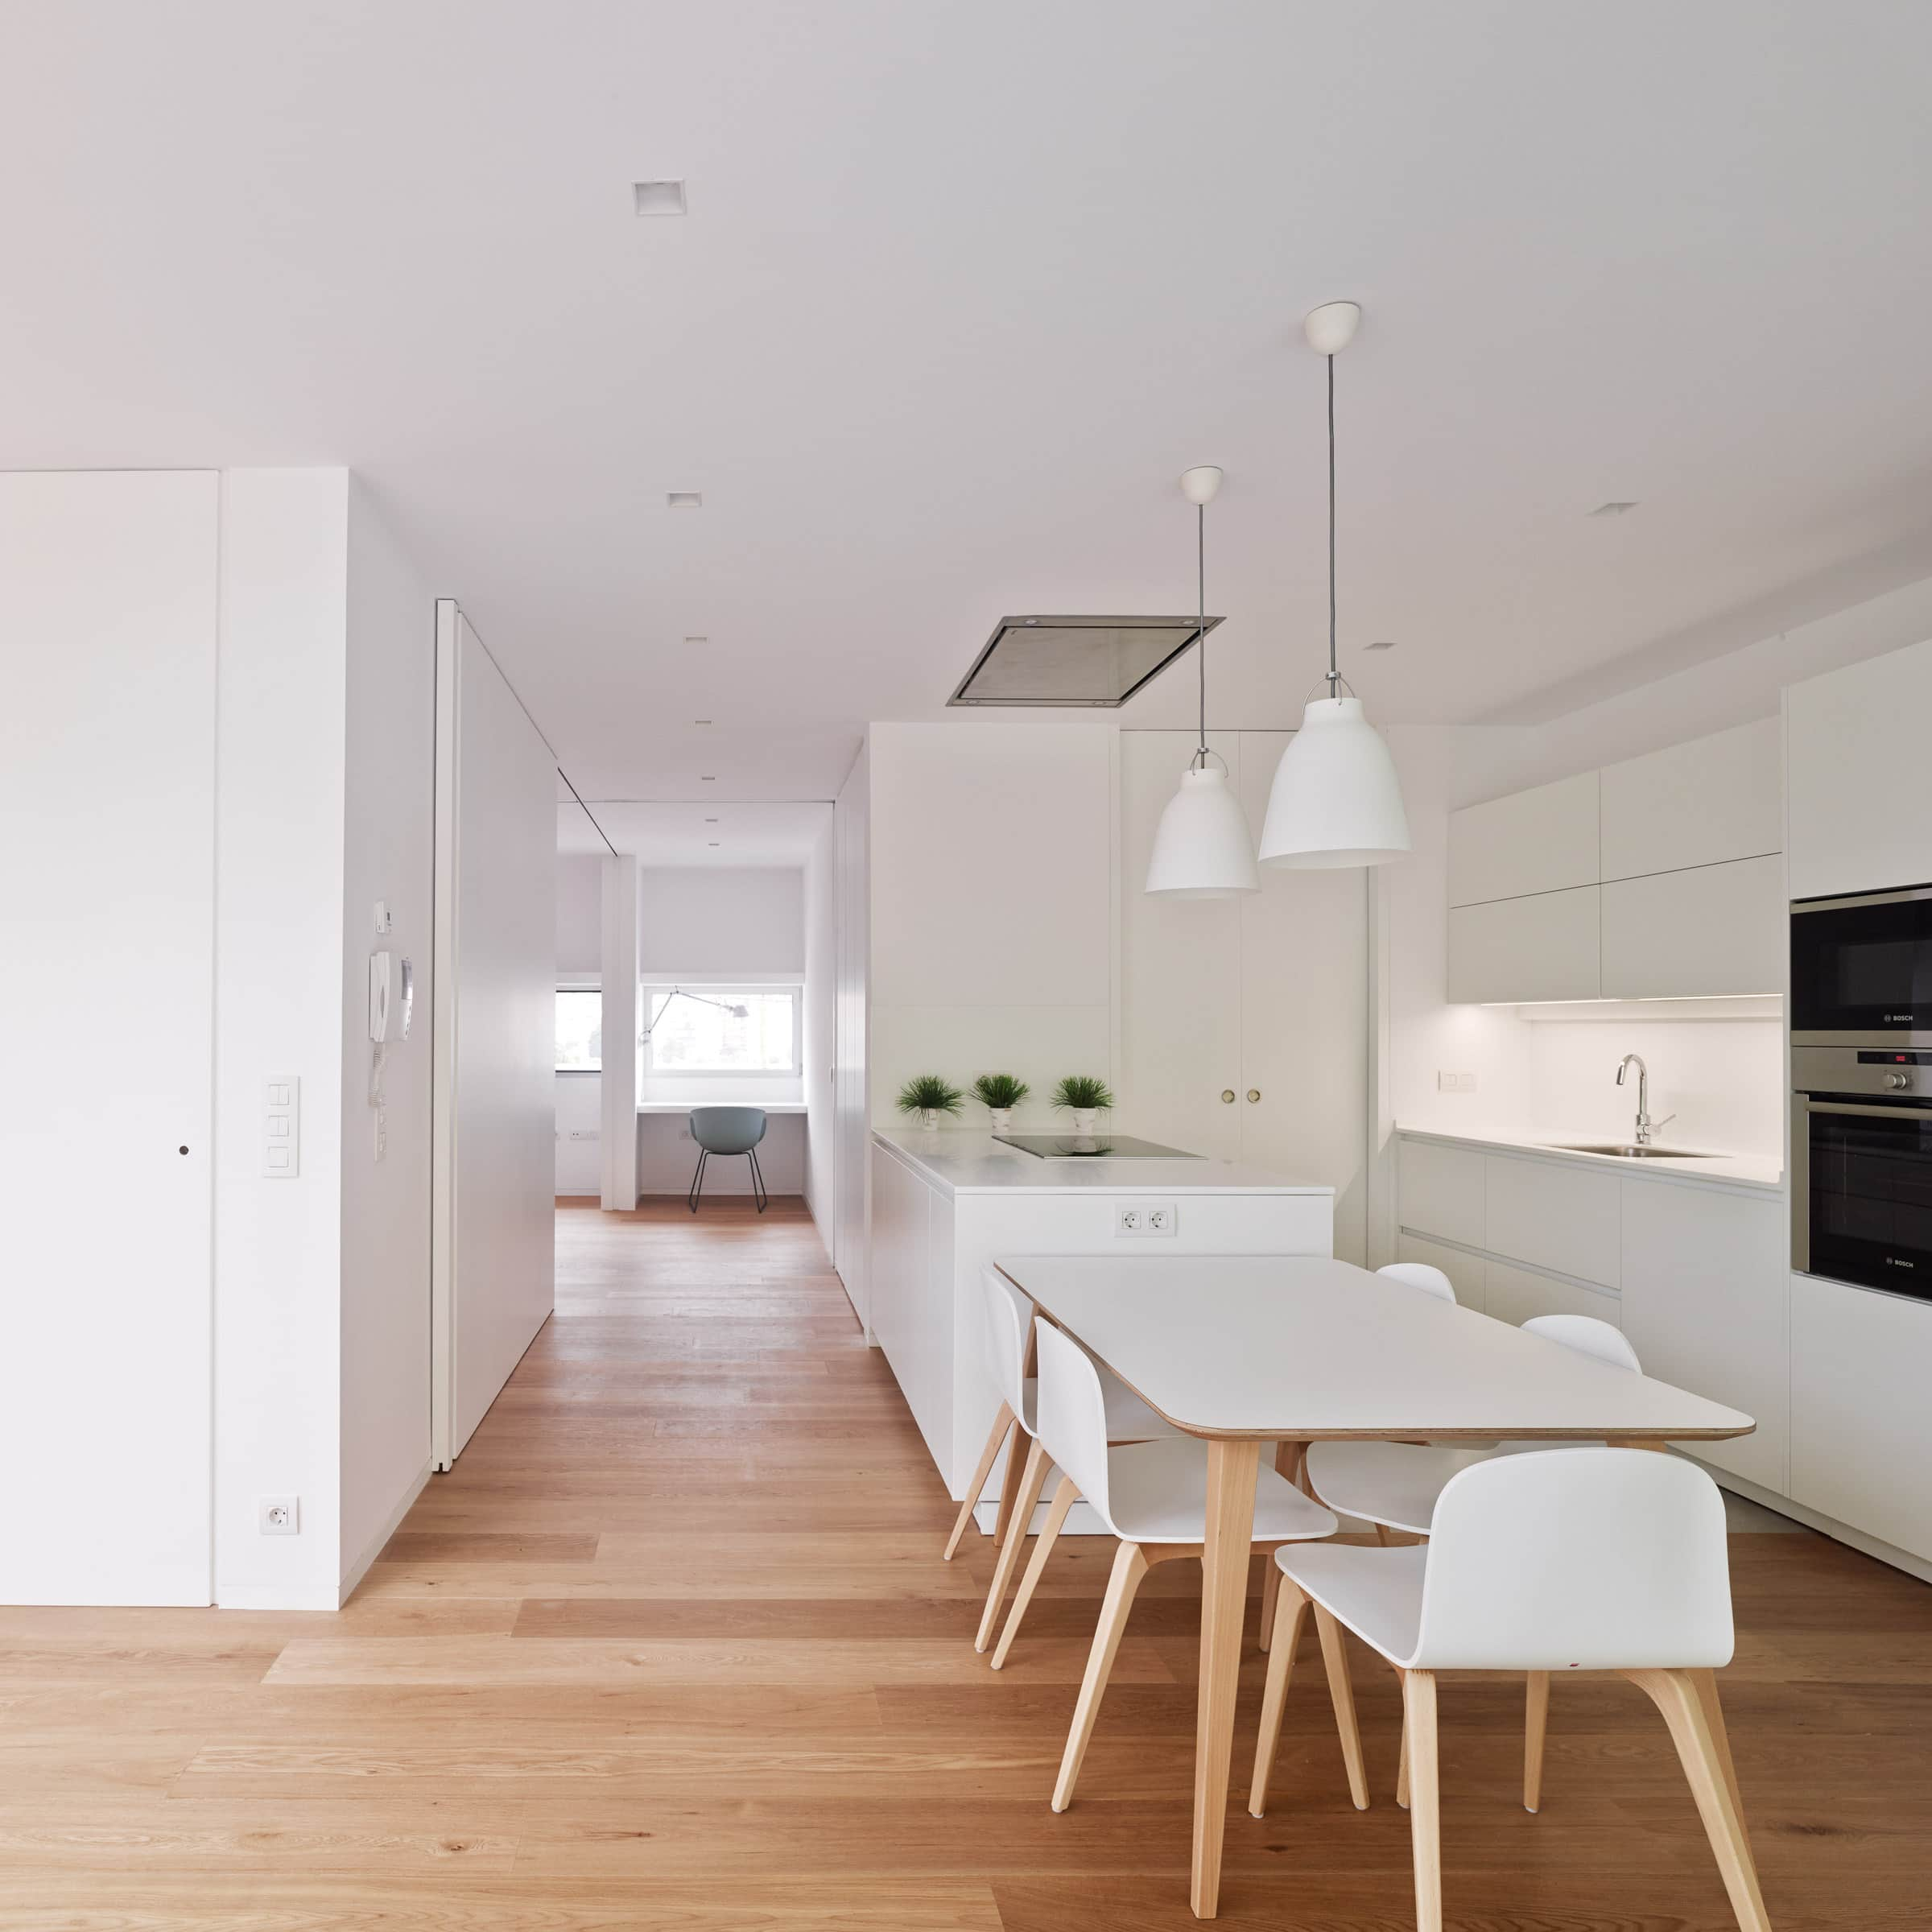 Kitchen with Sliding Wall Panels